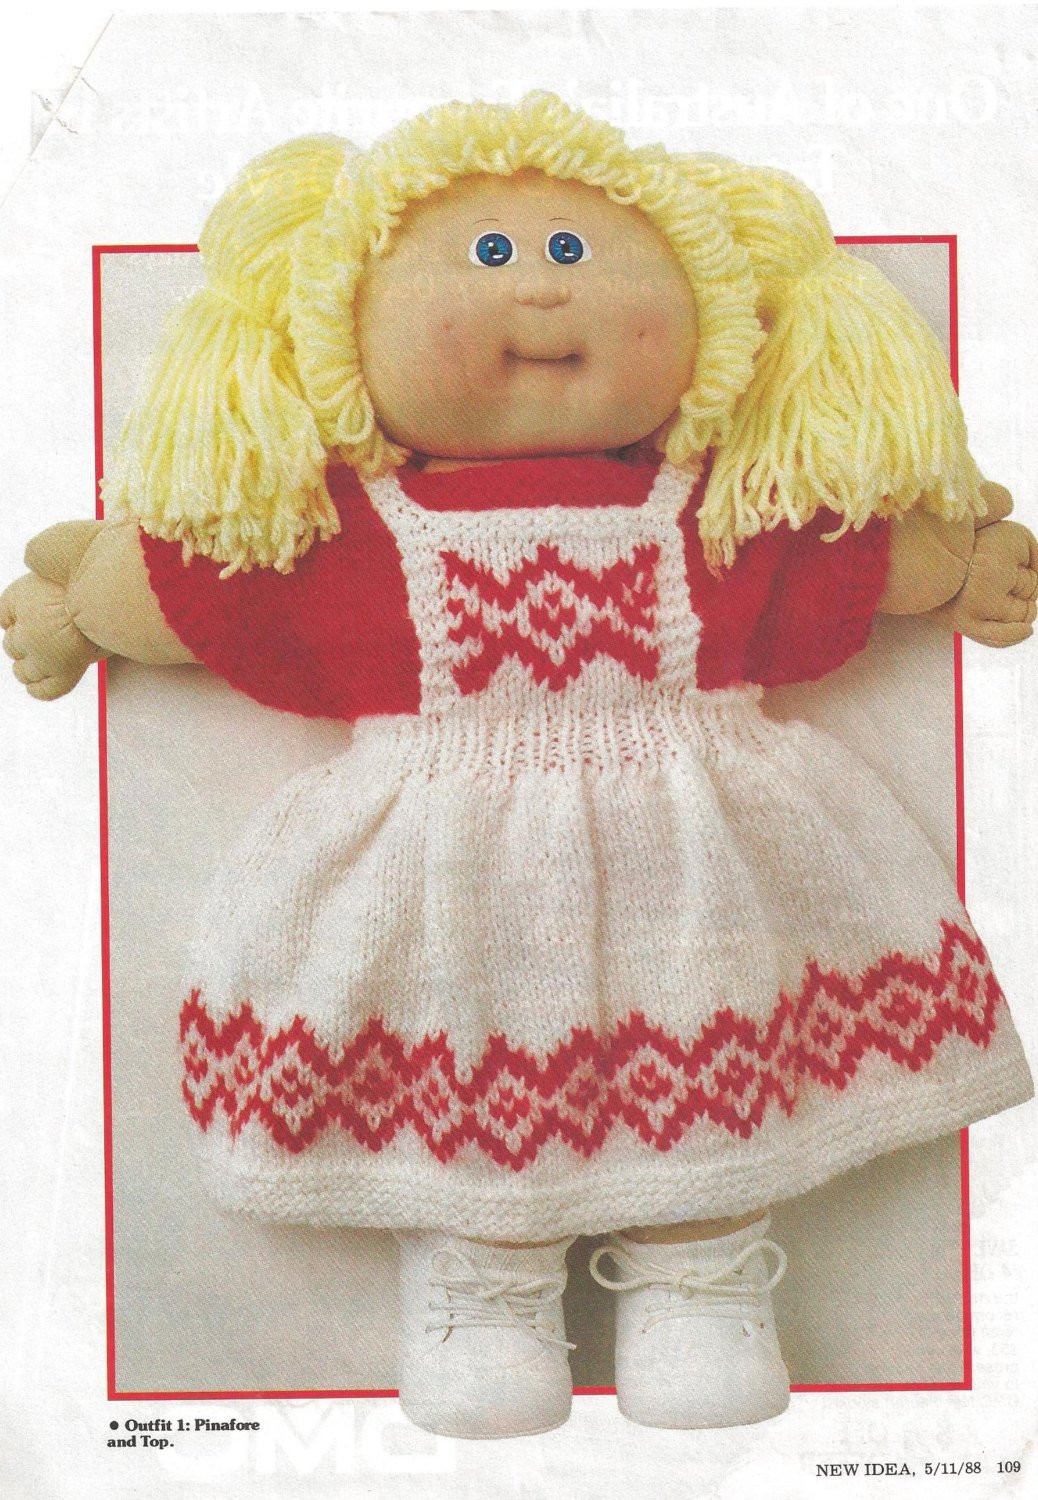 Vintage Cabbage Patch Dolls Inspirational Knitting Pattern Vintage Cabbage Patch Doll Four Outfits 1988 Of Amazing 43 Models Vintage Cabbage Patch Dolls